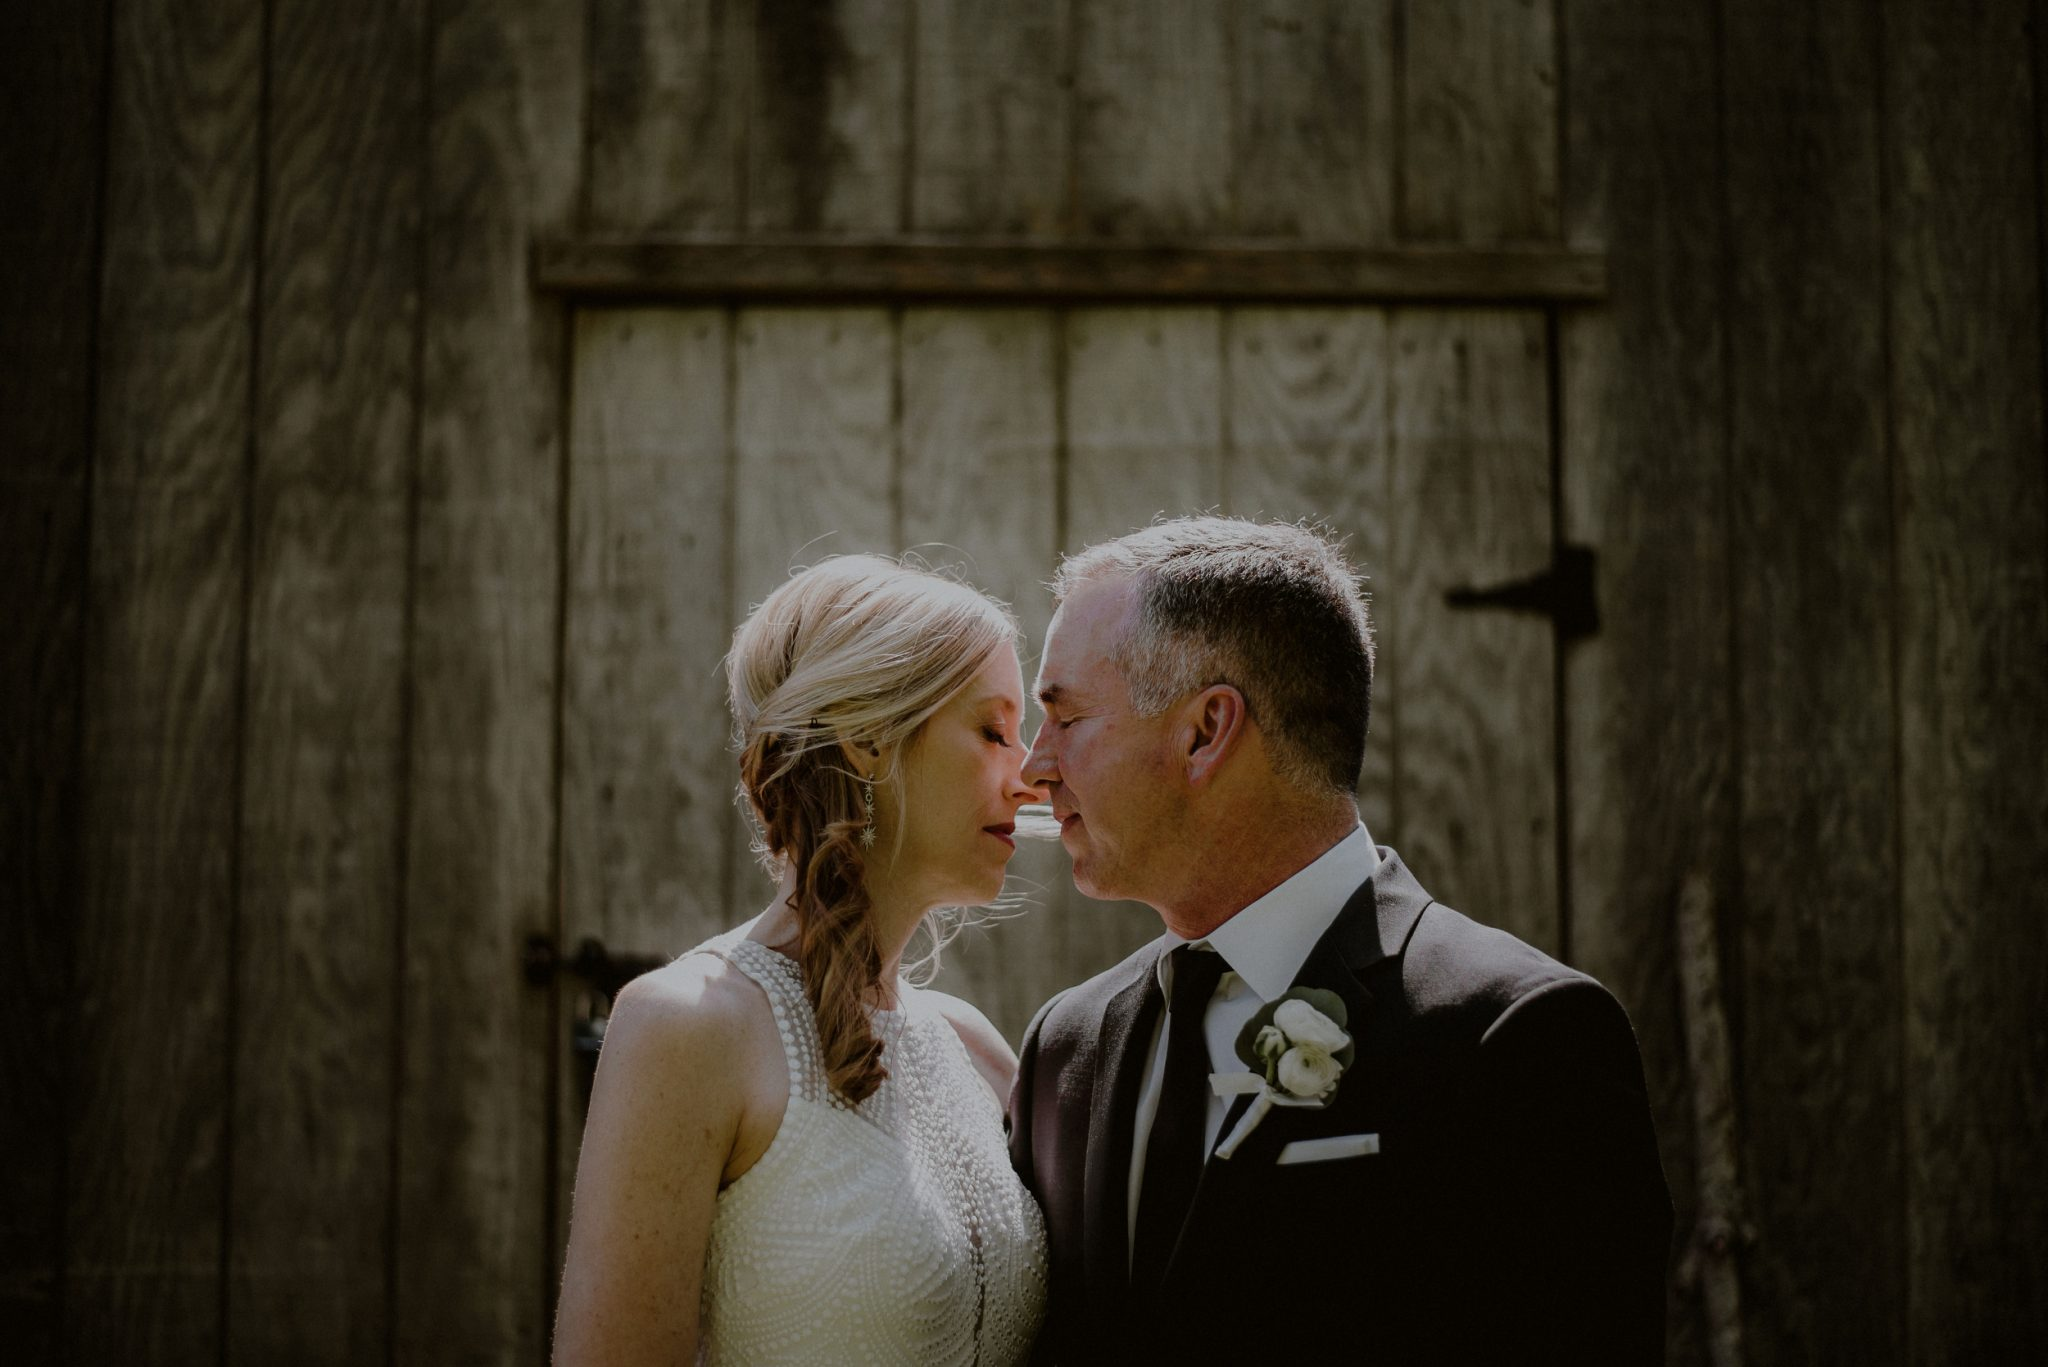 emotional wedding portrait of bride and groom